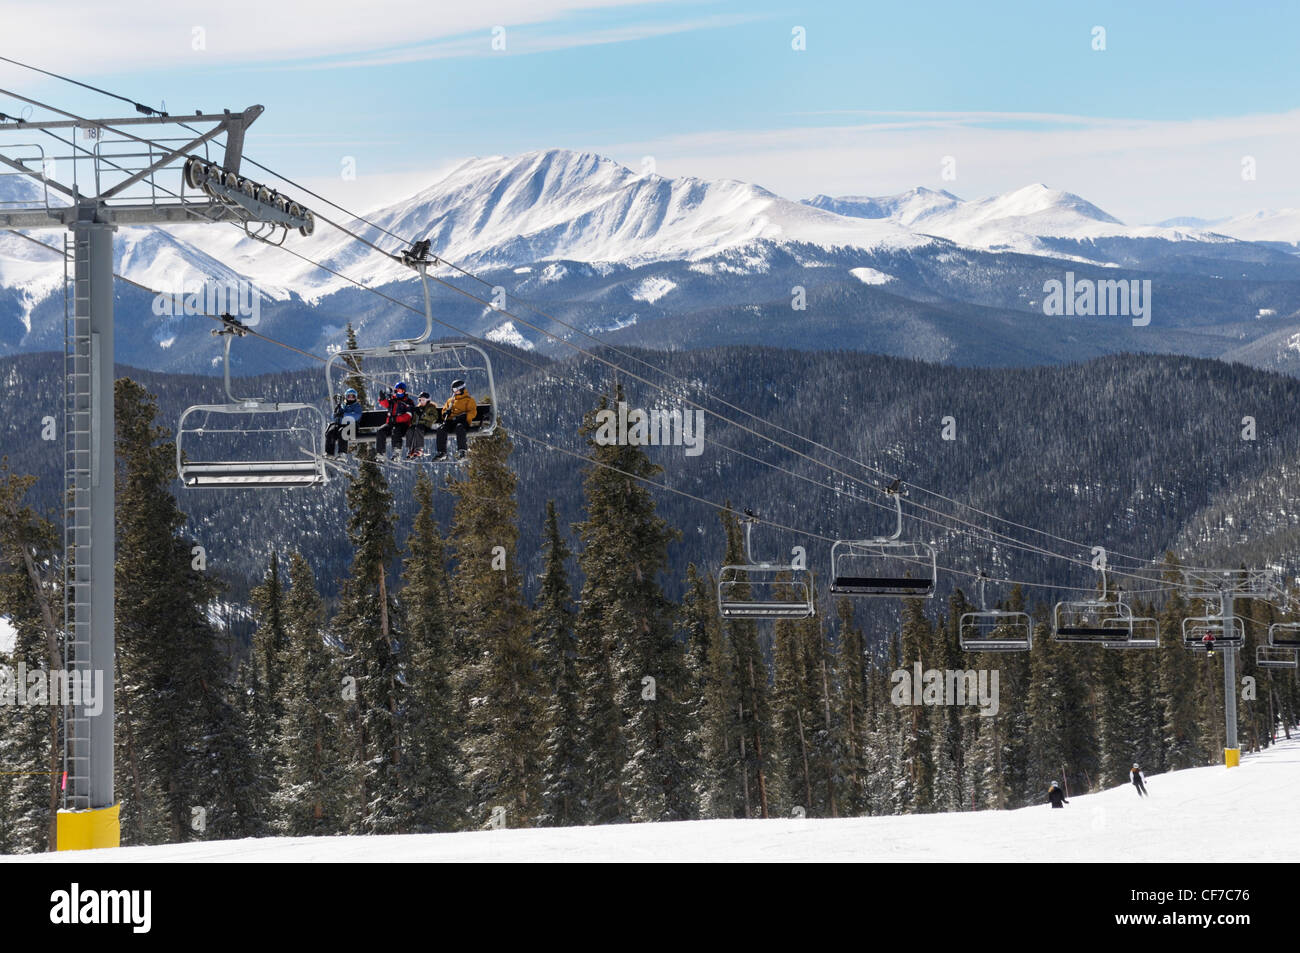 Chairlift bringing skiers to the summit, Keystone Resort, Colorado - Stock Image